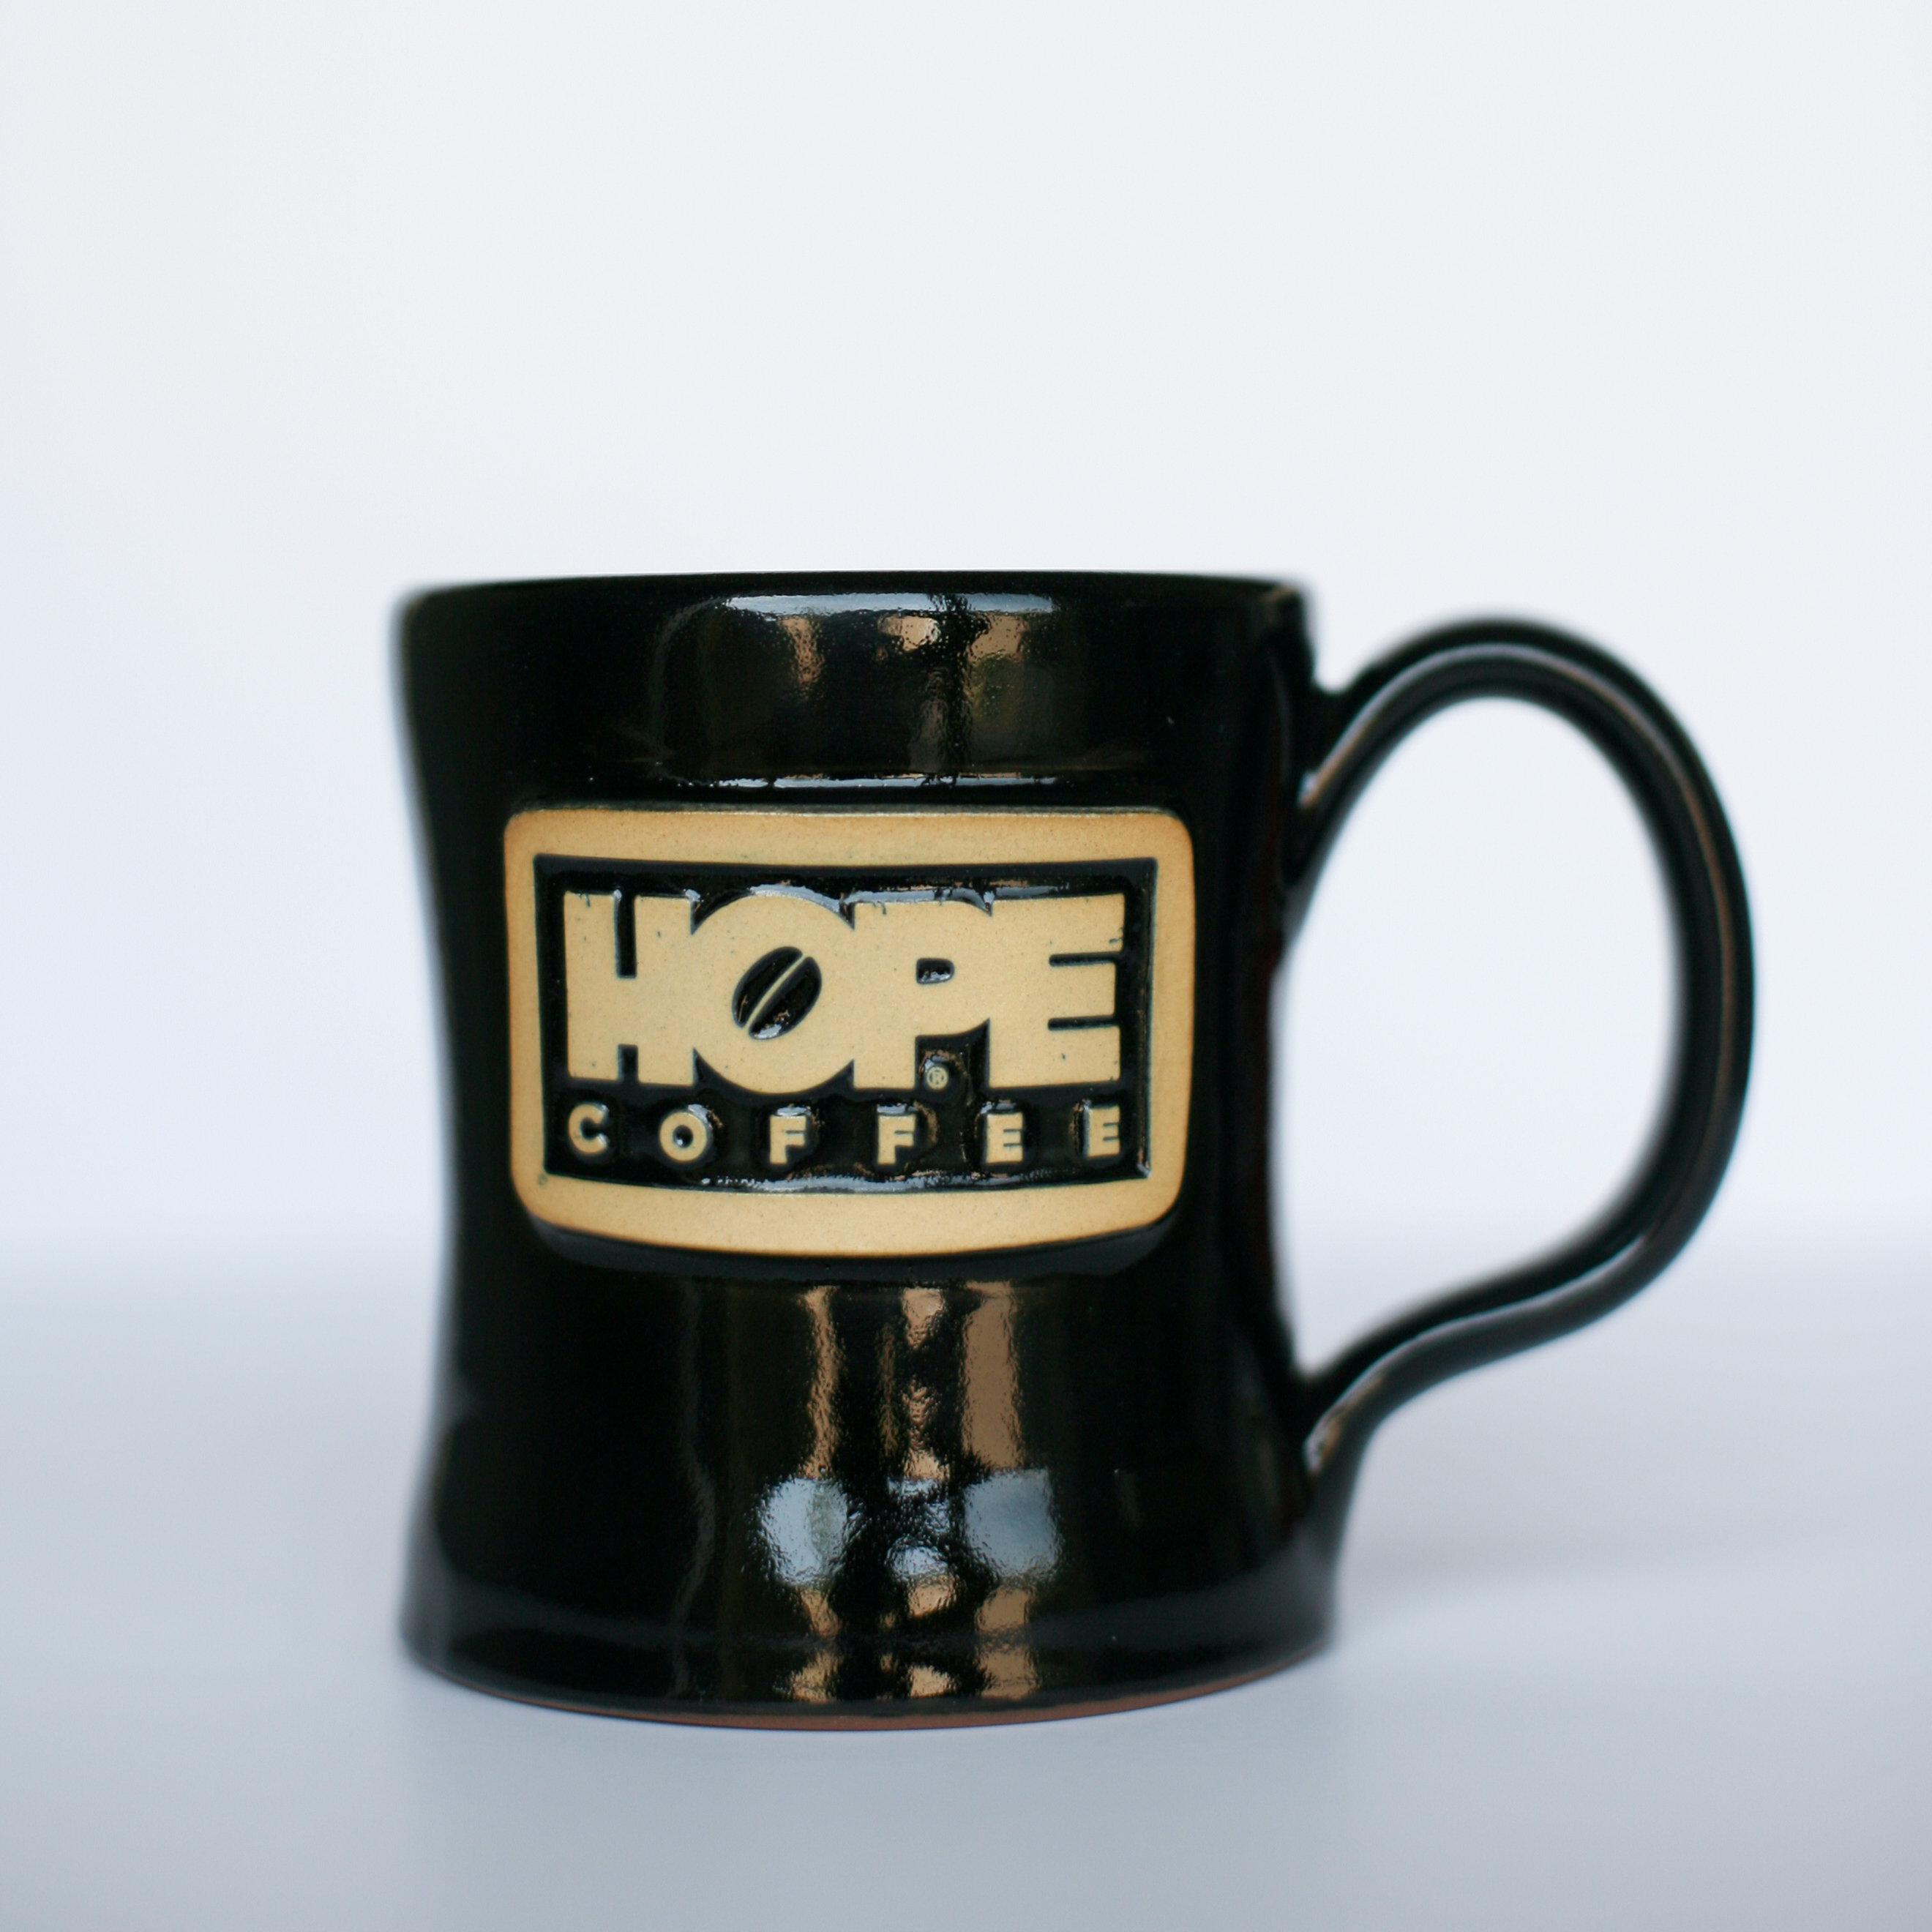 HOPE Coffee 11 oz. Handcrafted Stoneware Mug - Diner Style